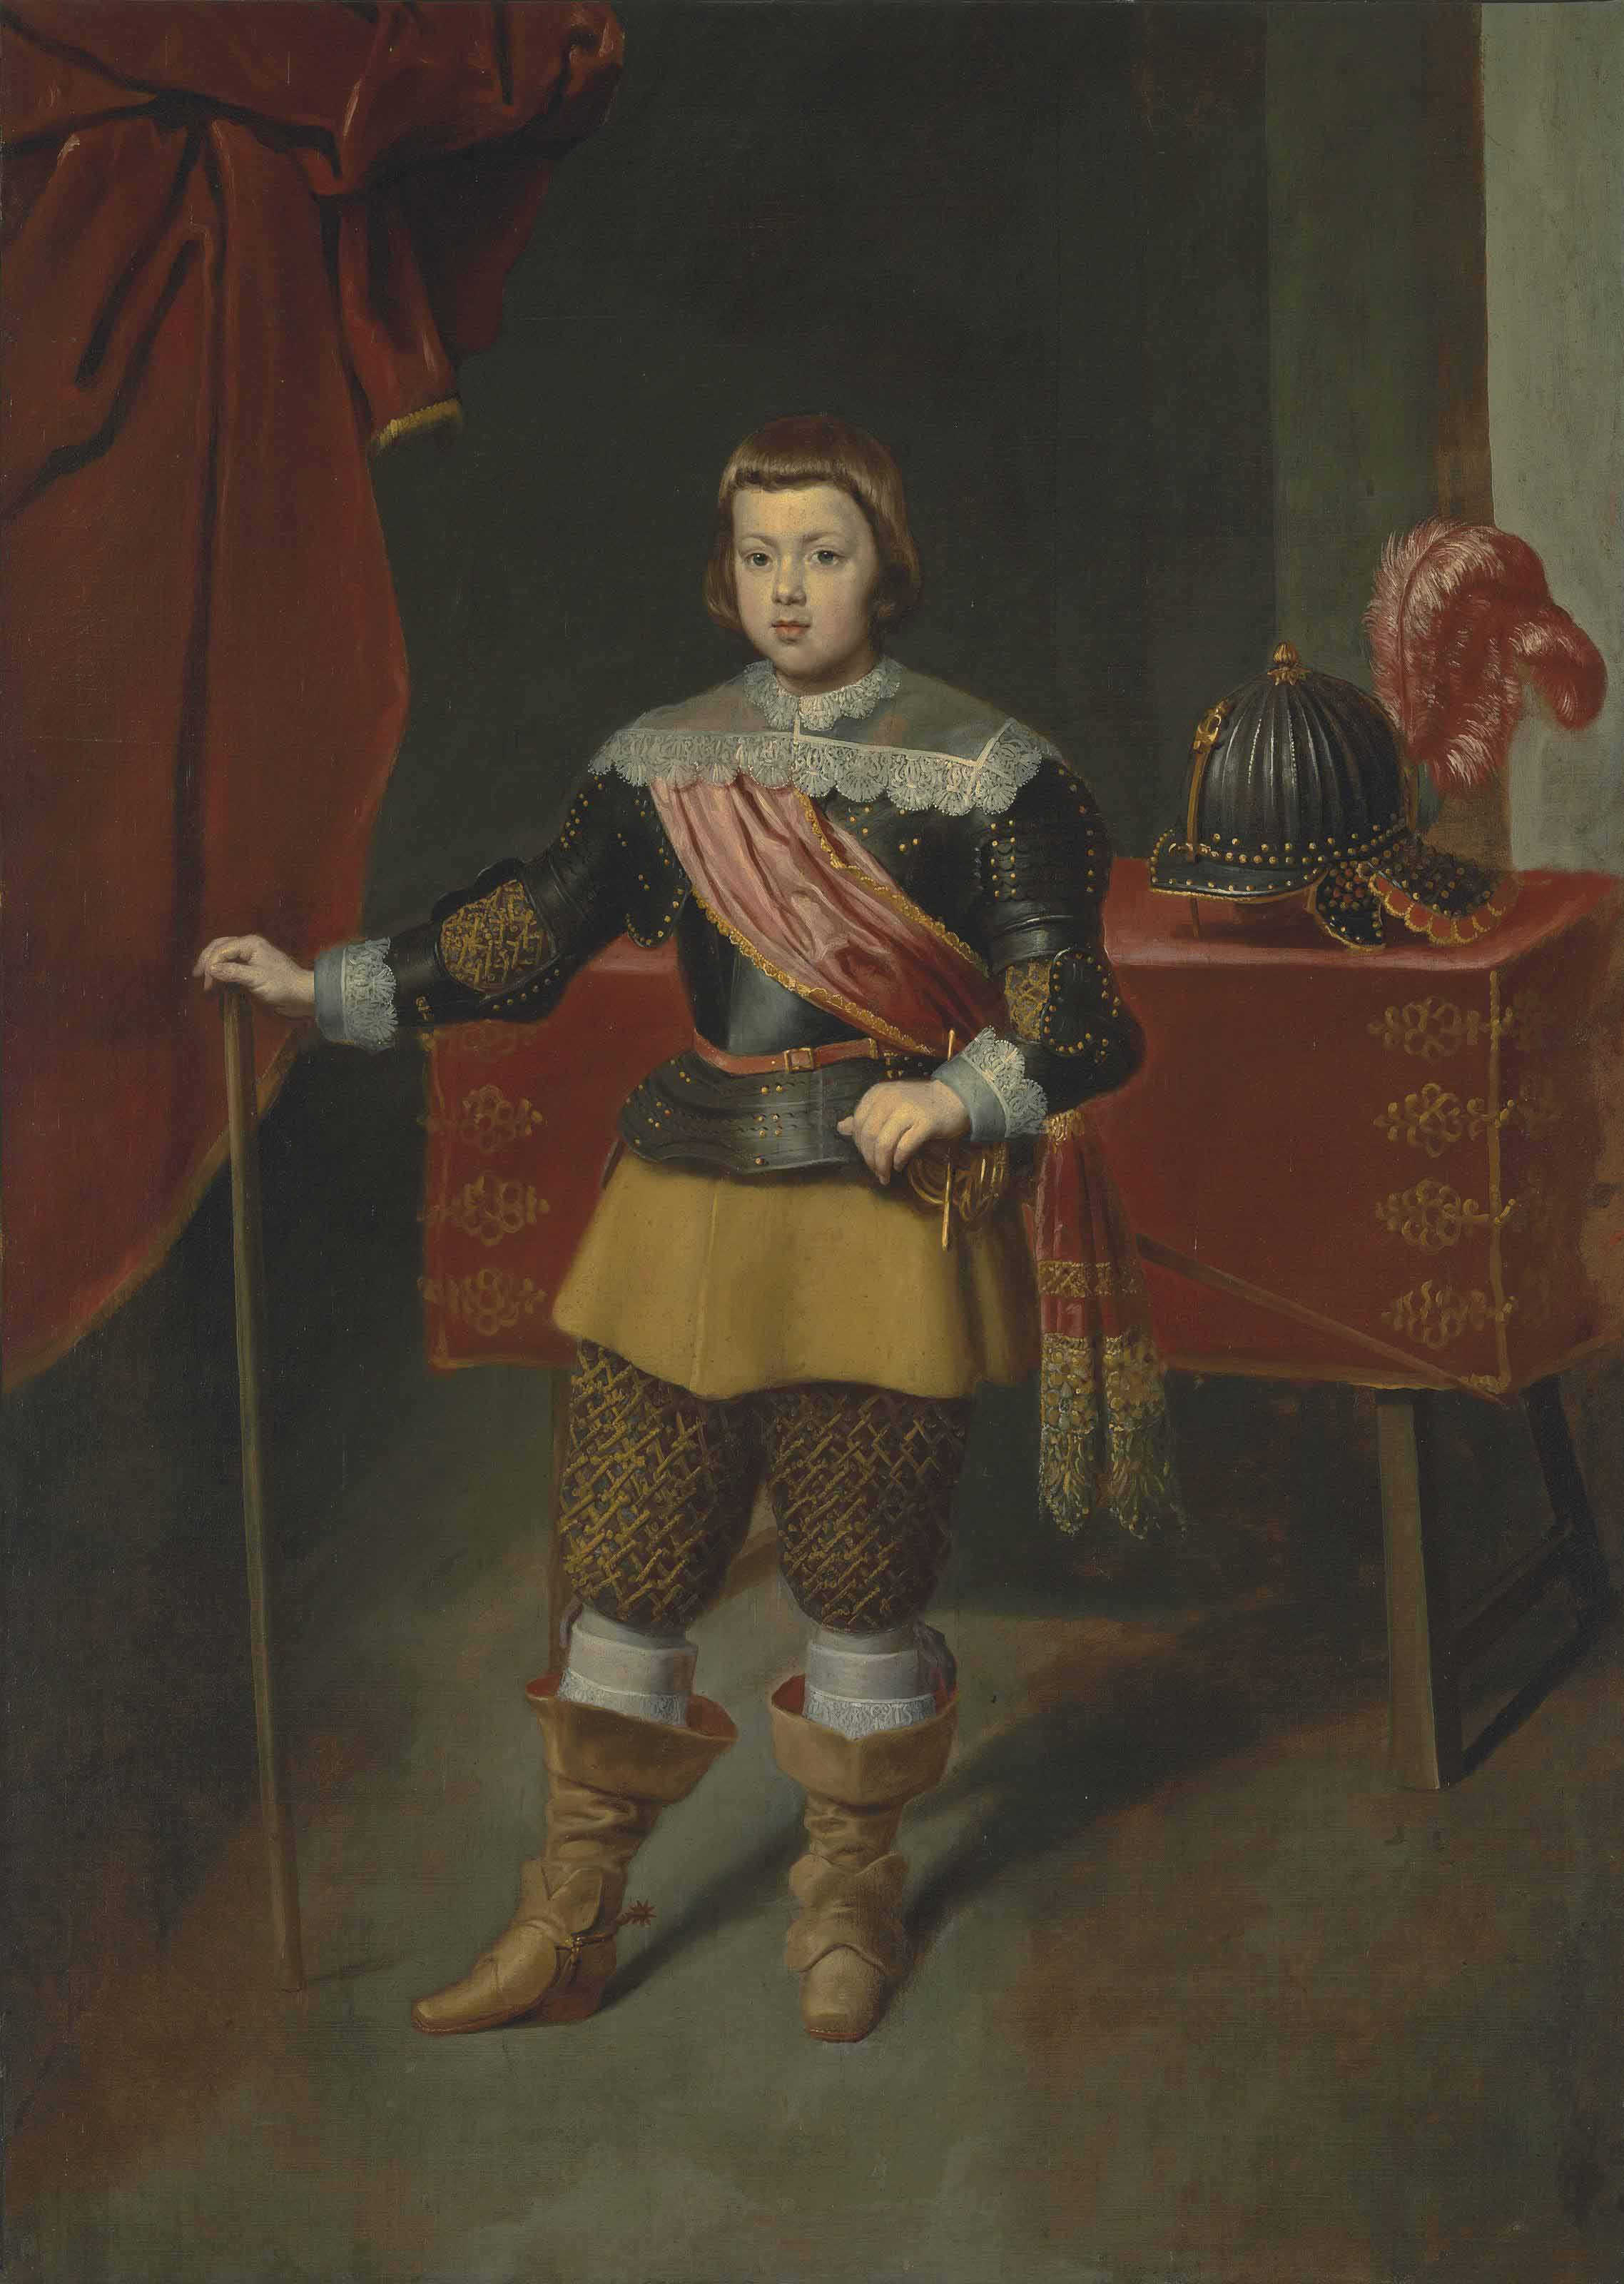 Portrait of the Infante Baltasar Carlos (1629-1646), son of King Philip IV of Spain and his wife Isabella of Bourbon, full-length, in armour with a red sash